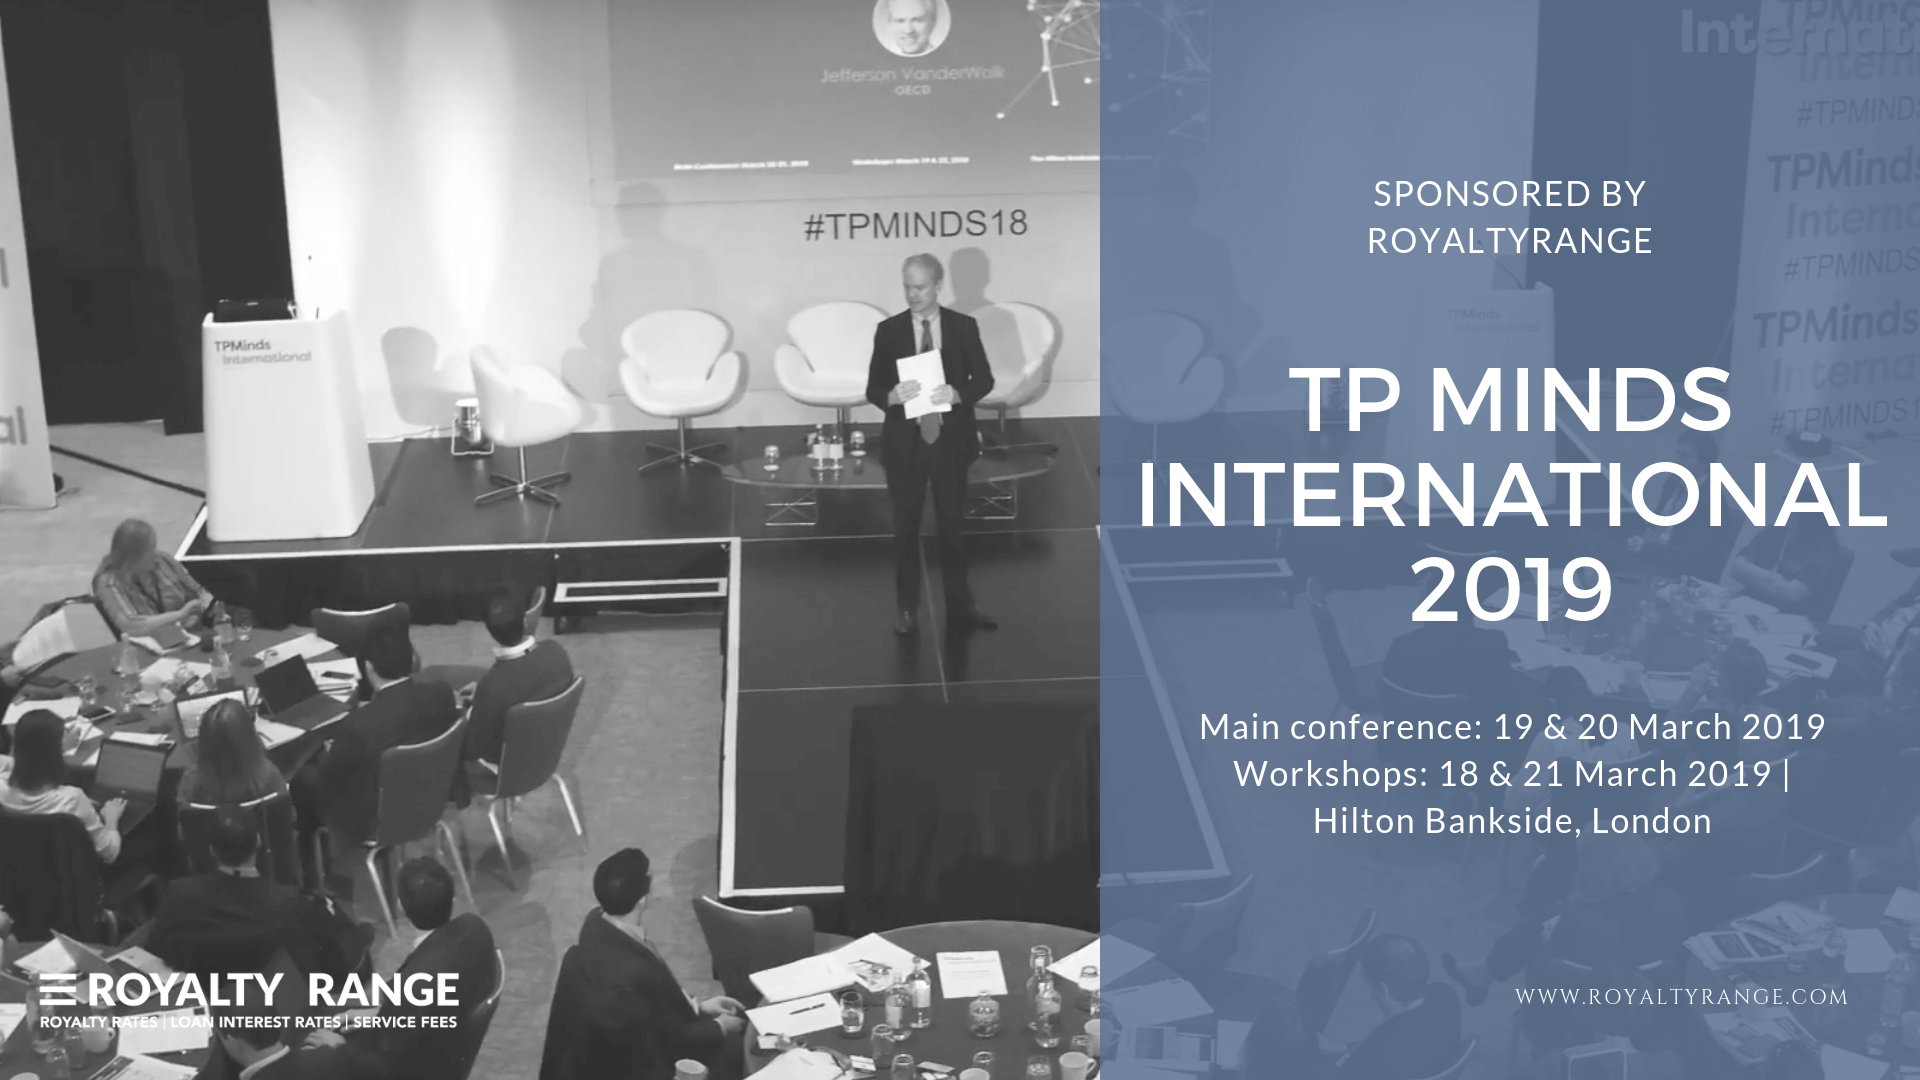 TP Minds International 2019